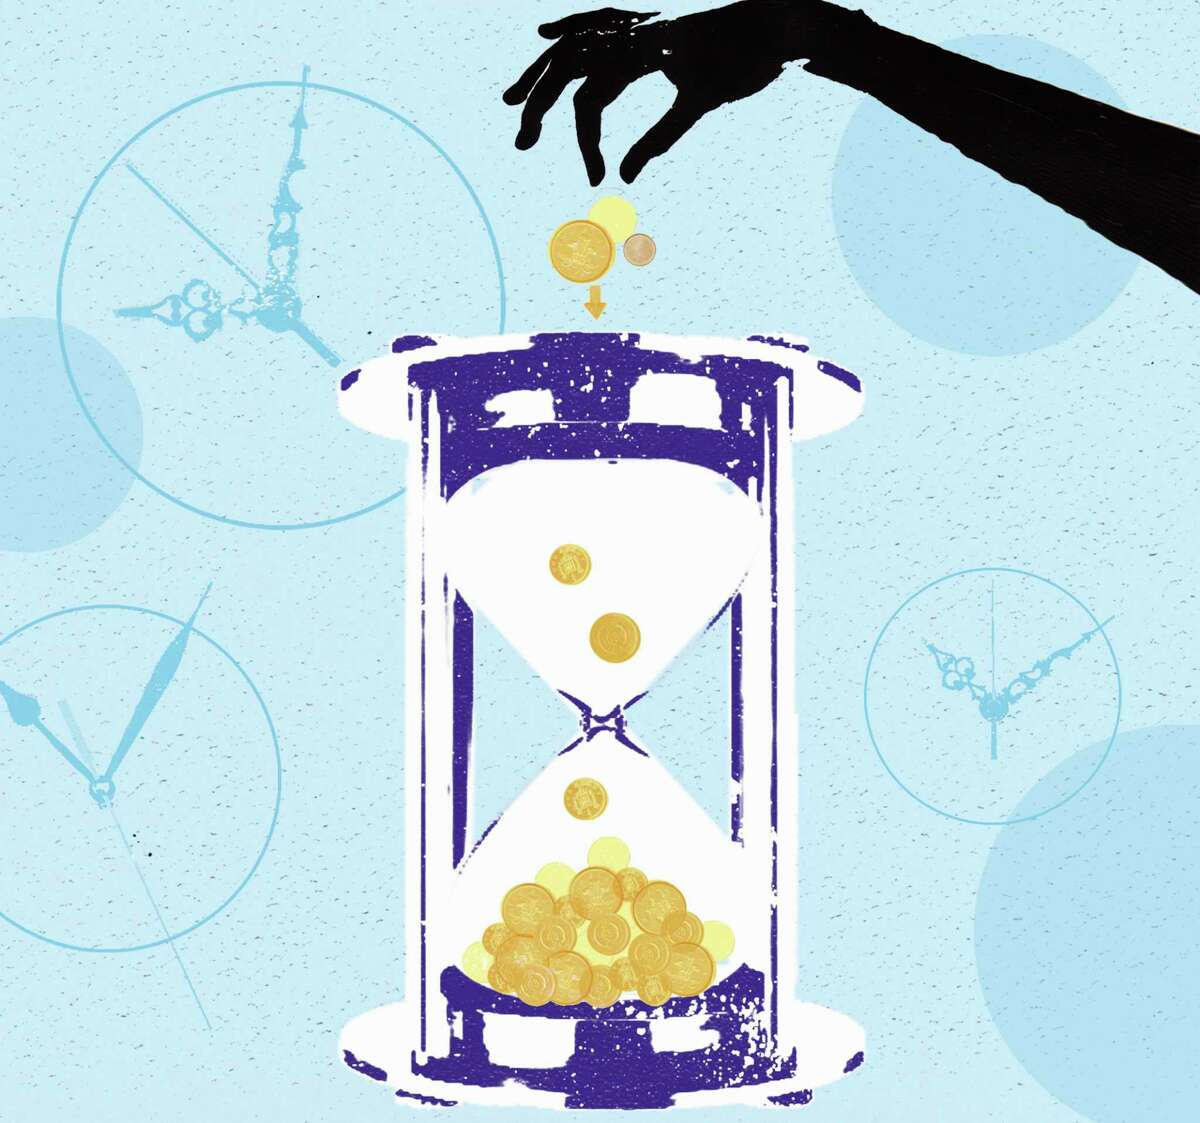 Investor dropping coins in hourglass